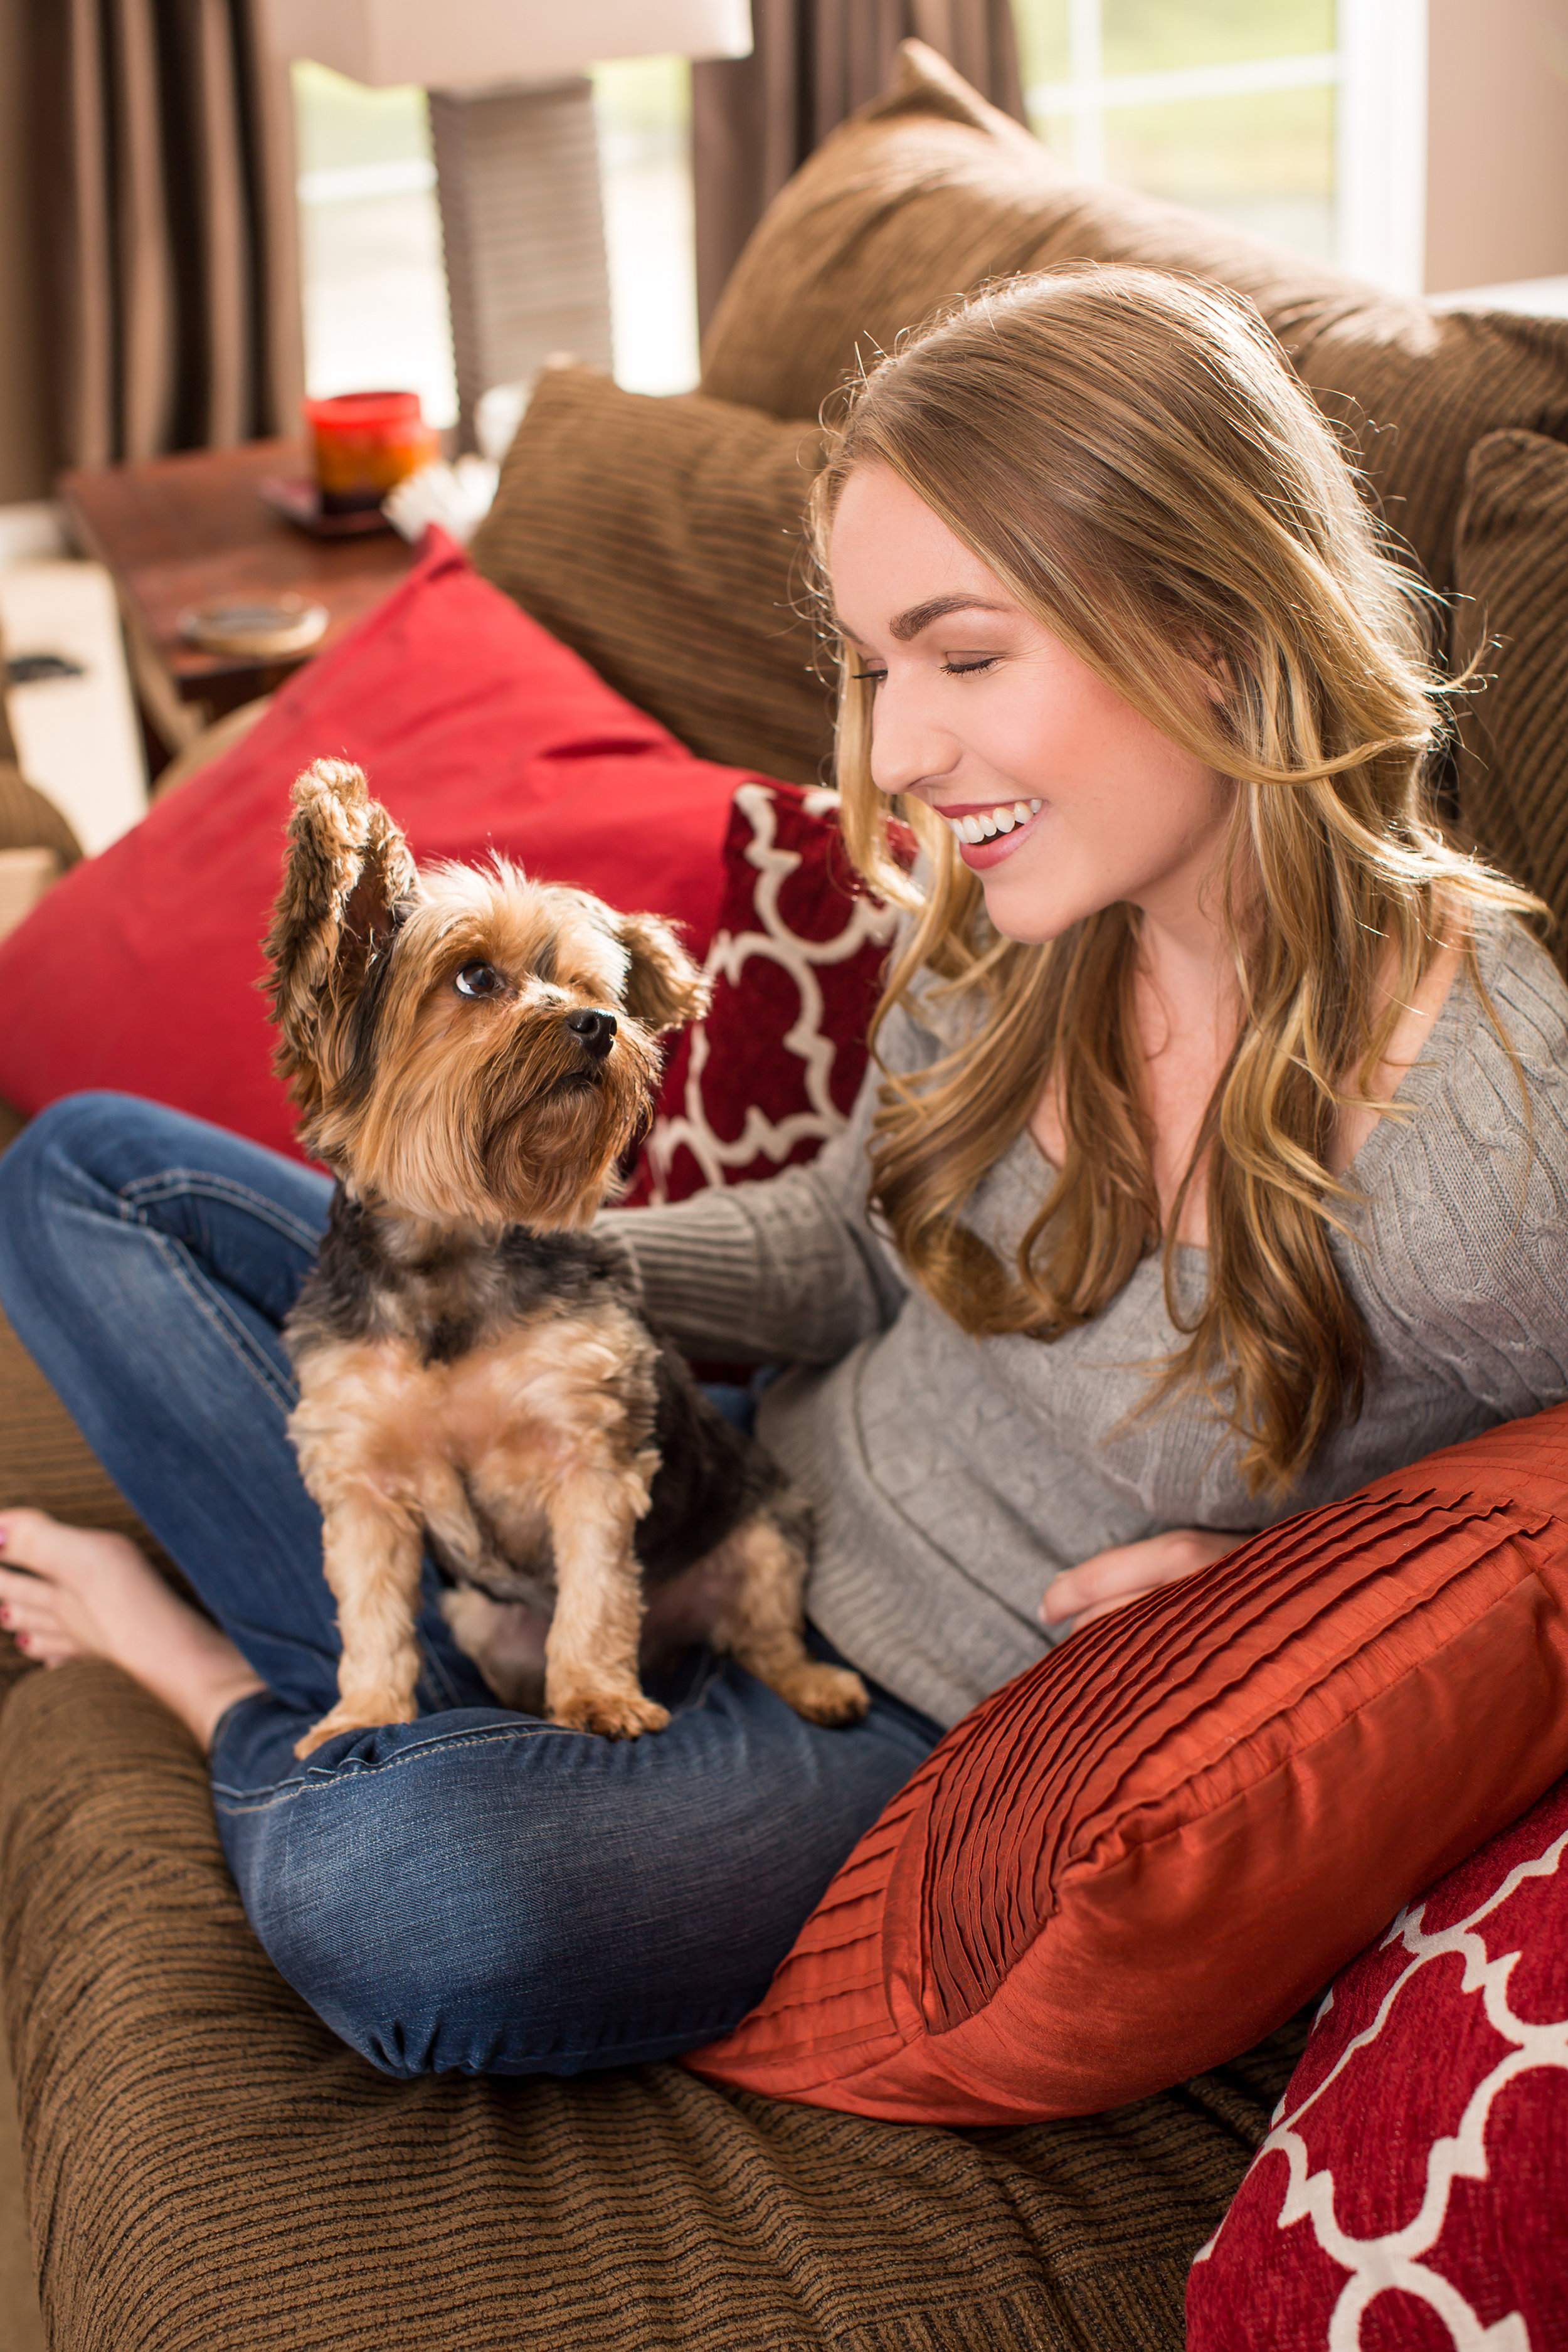 Depositphotos_pet sitter on couch with Yorkie.jpg